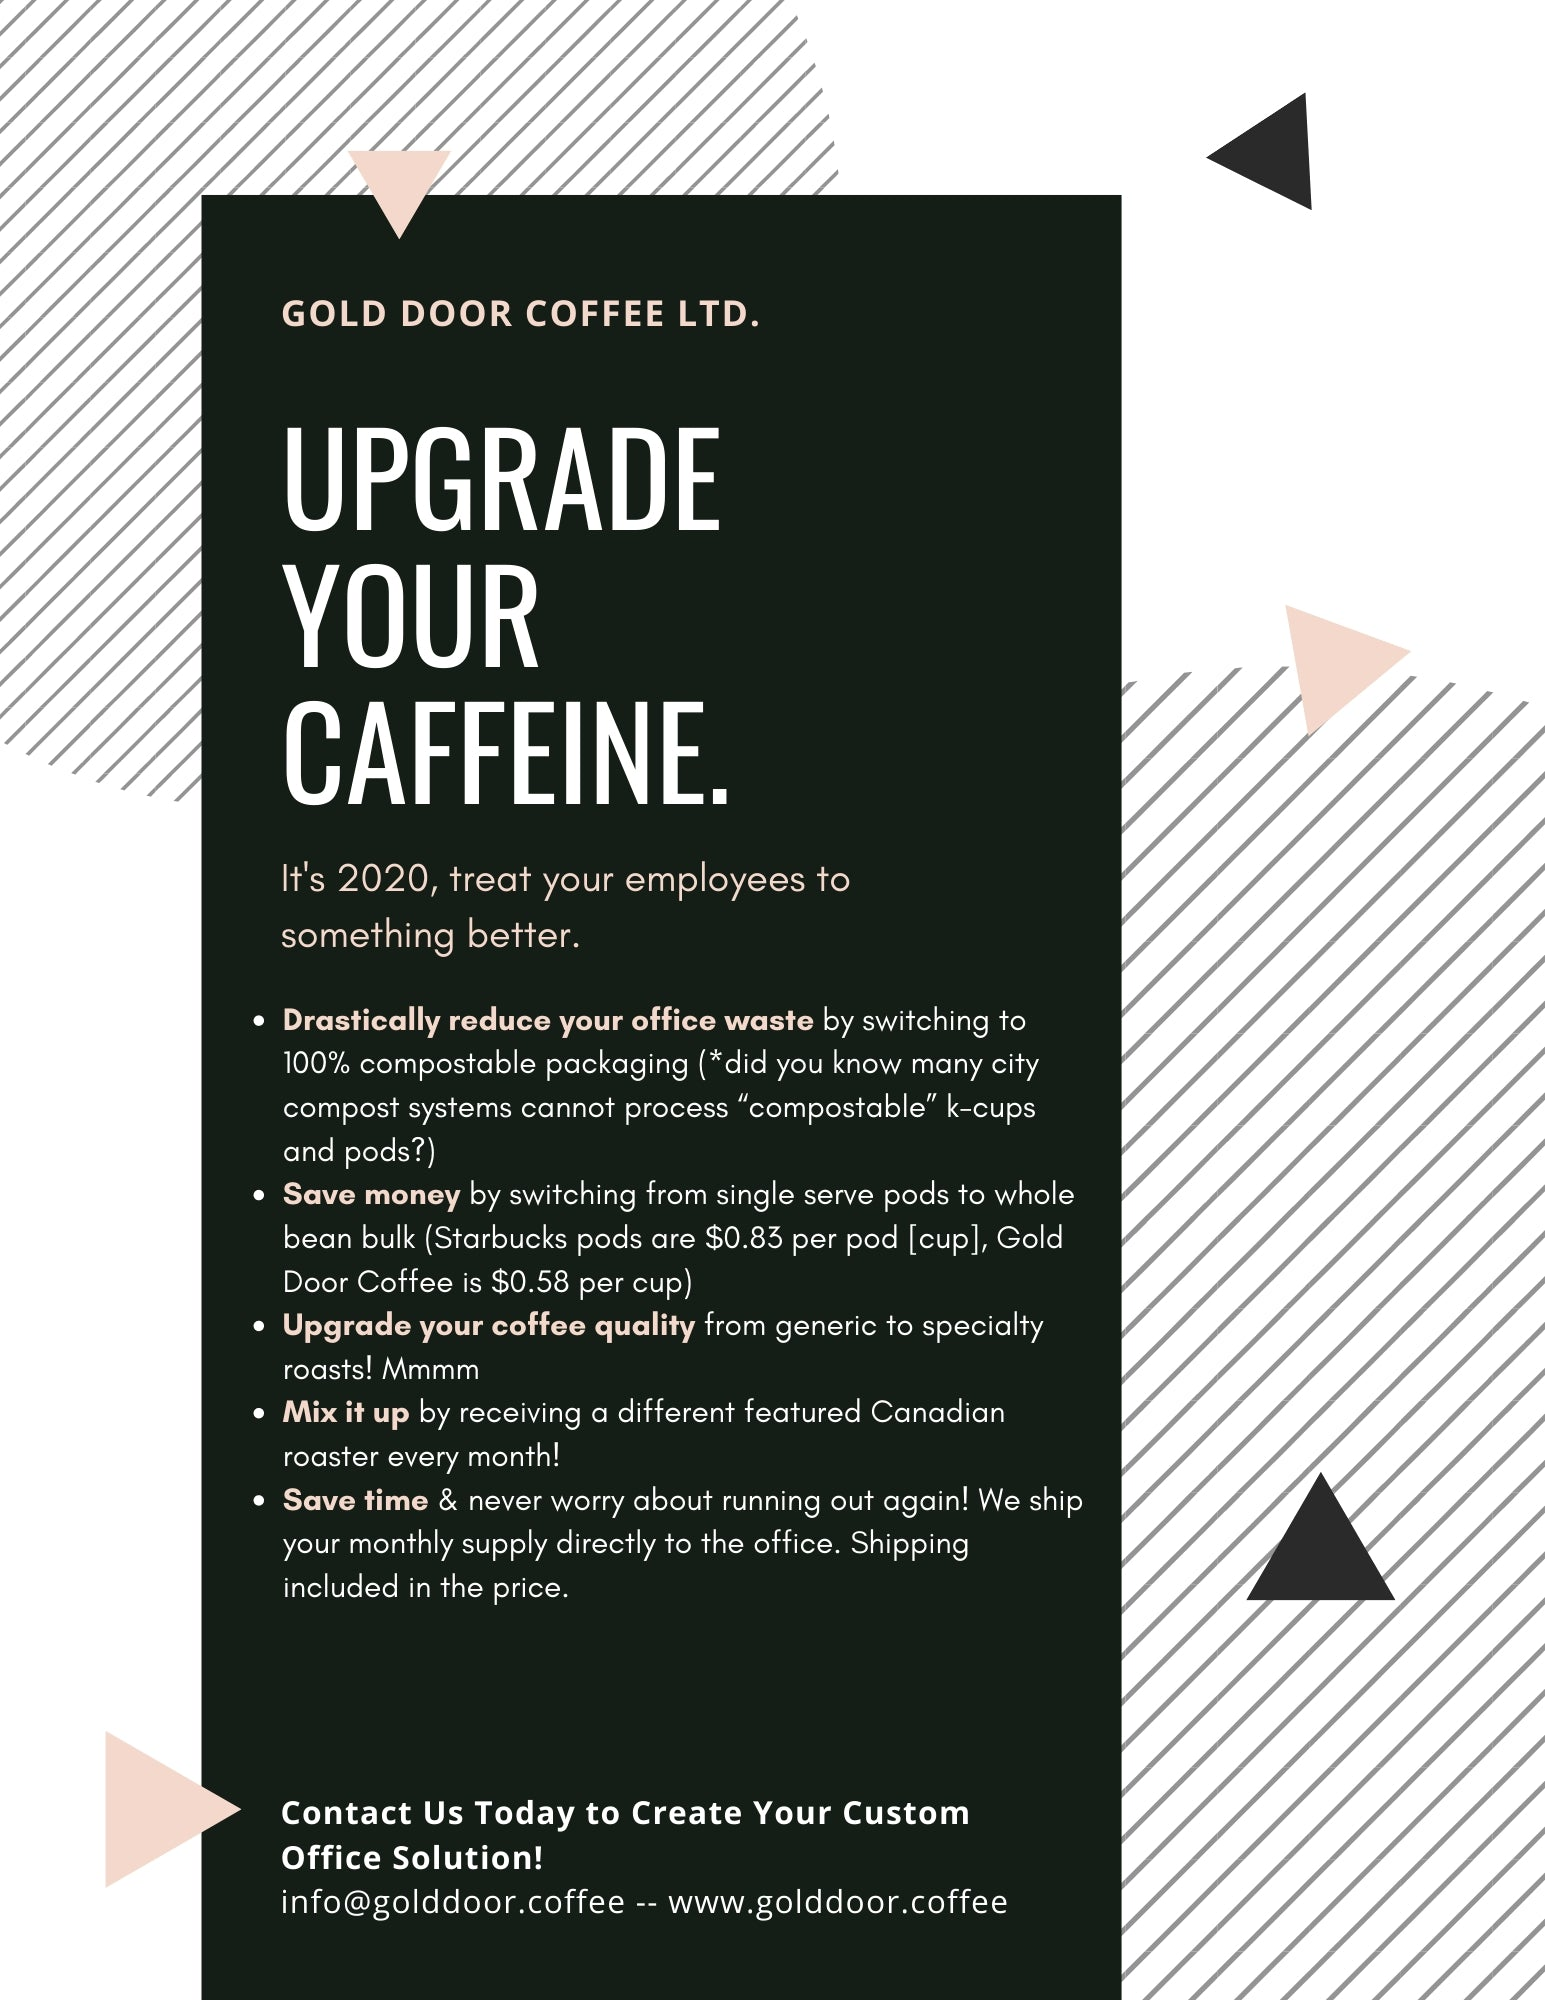 Customized zero-waste office coffee solutions from Gold Door Coffee Ltd.